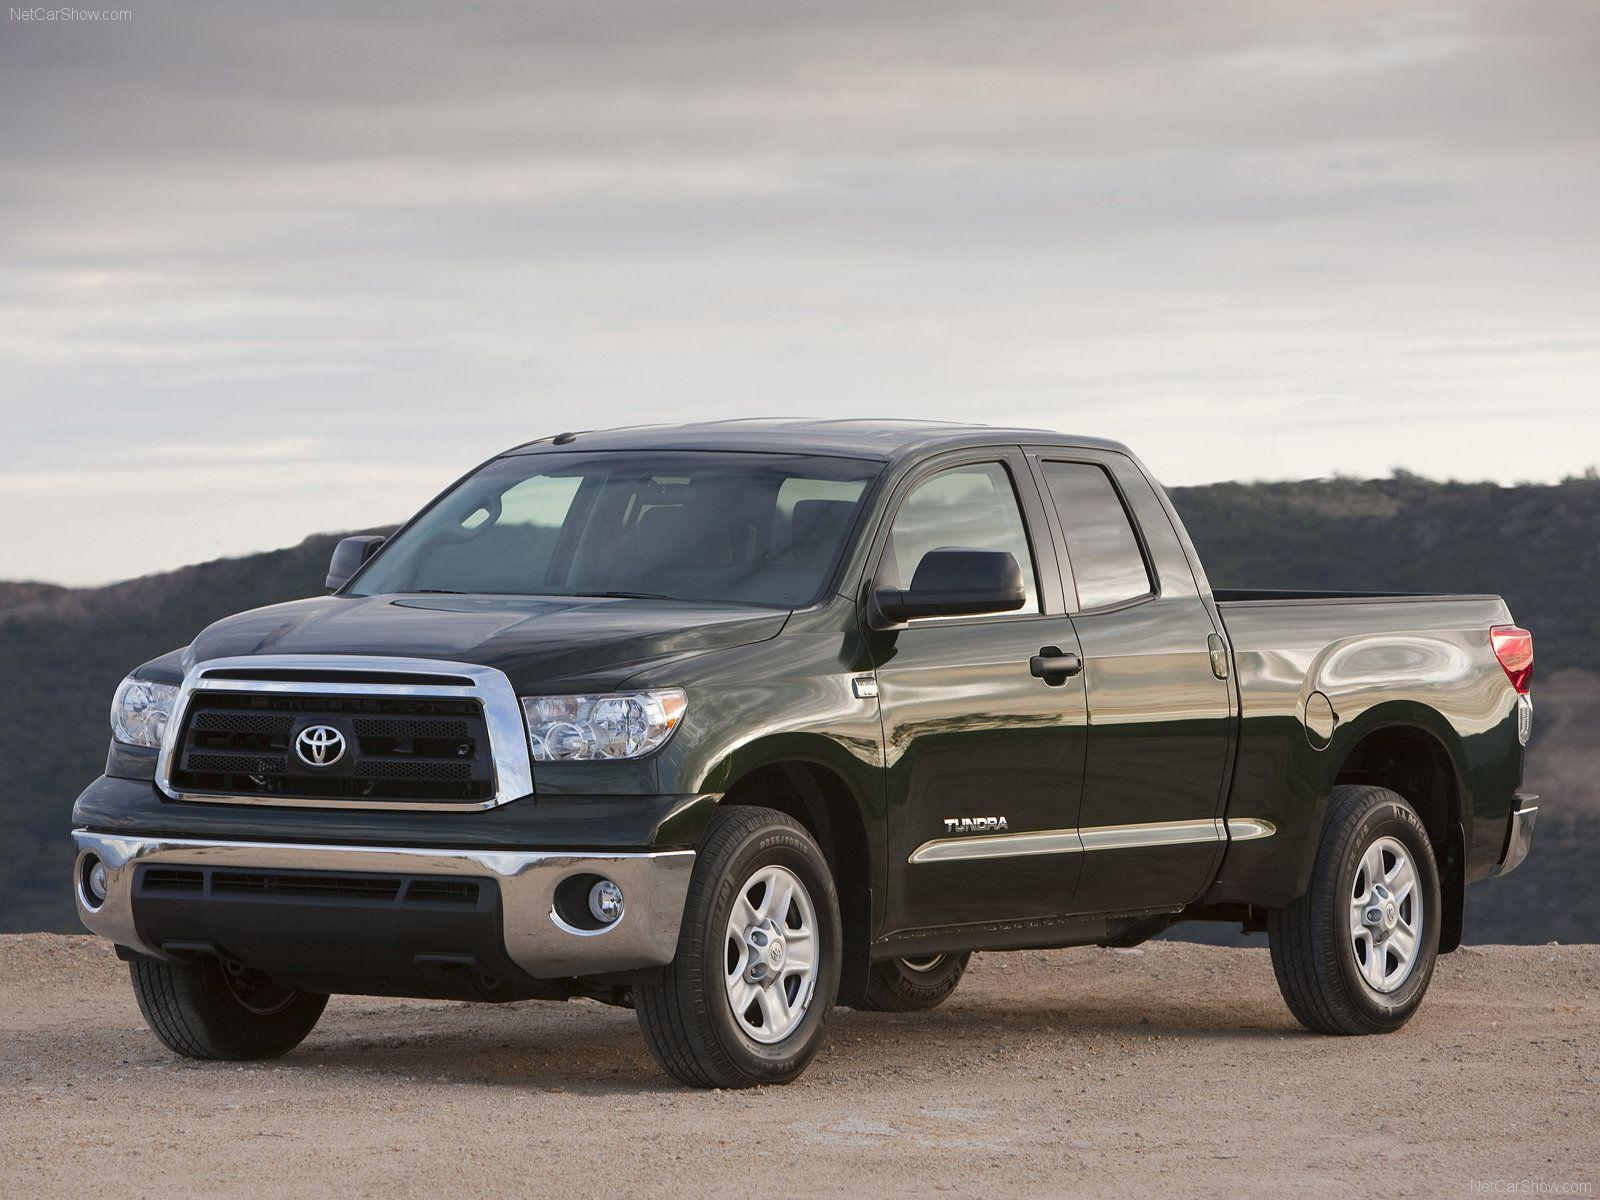 43 Free Modern Toyota Tundra Wallpapers ~ BsnSCB